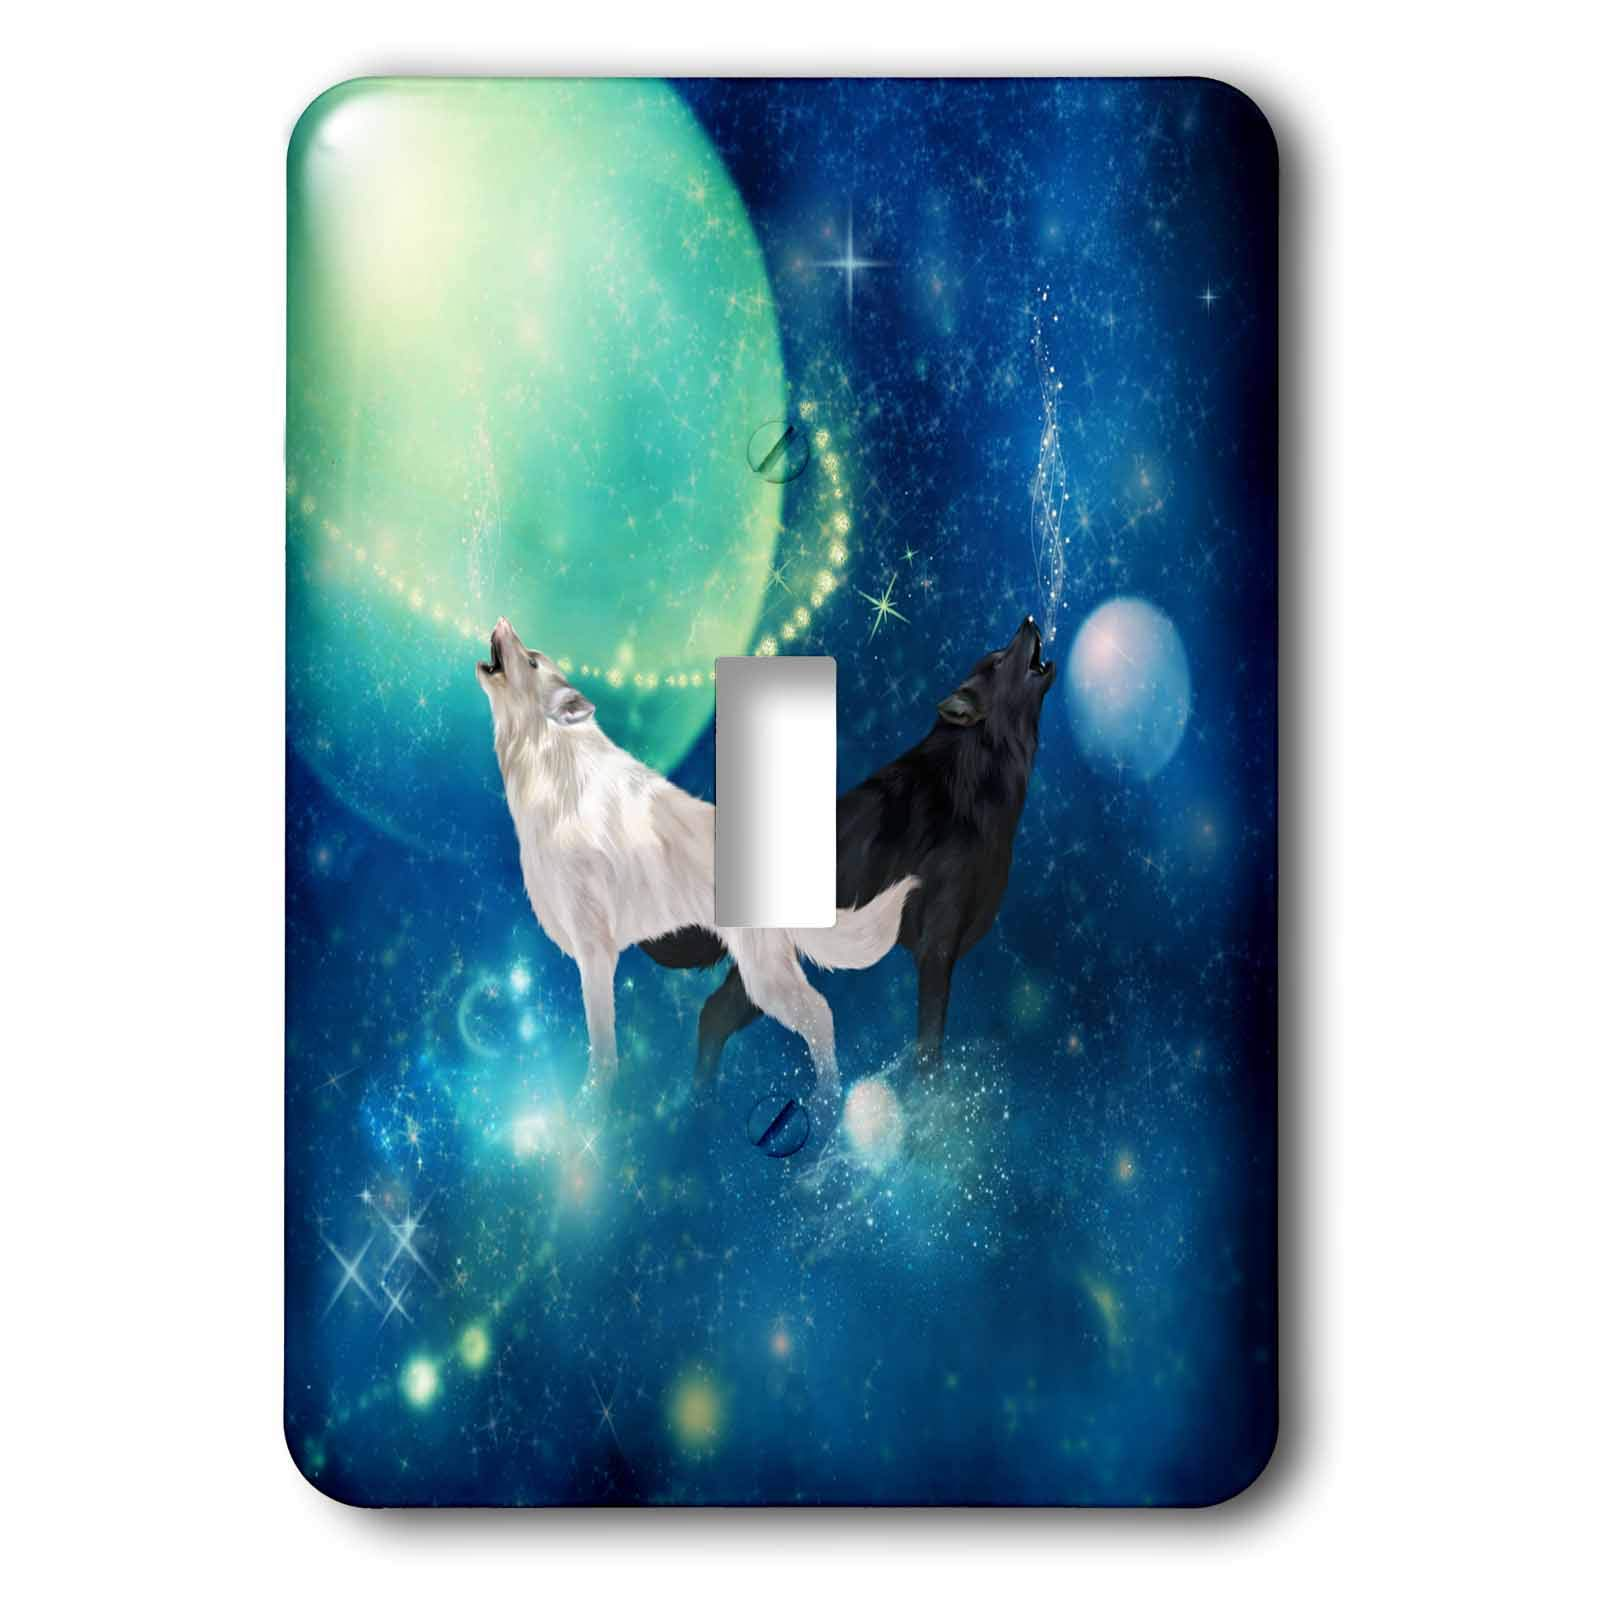 3dRose Heike Köhnen Design Animal - Black and white wolf in the universe - Light Switch Covers - single toggle switch (lsp_289163_1) by 3dRose